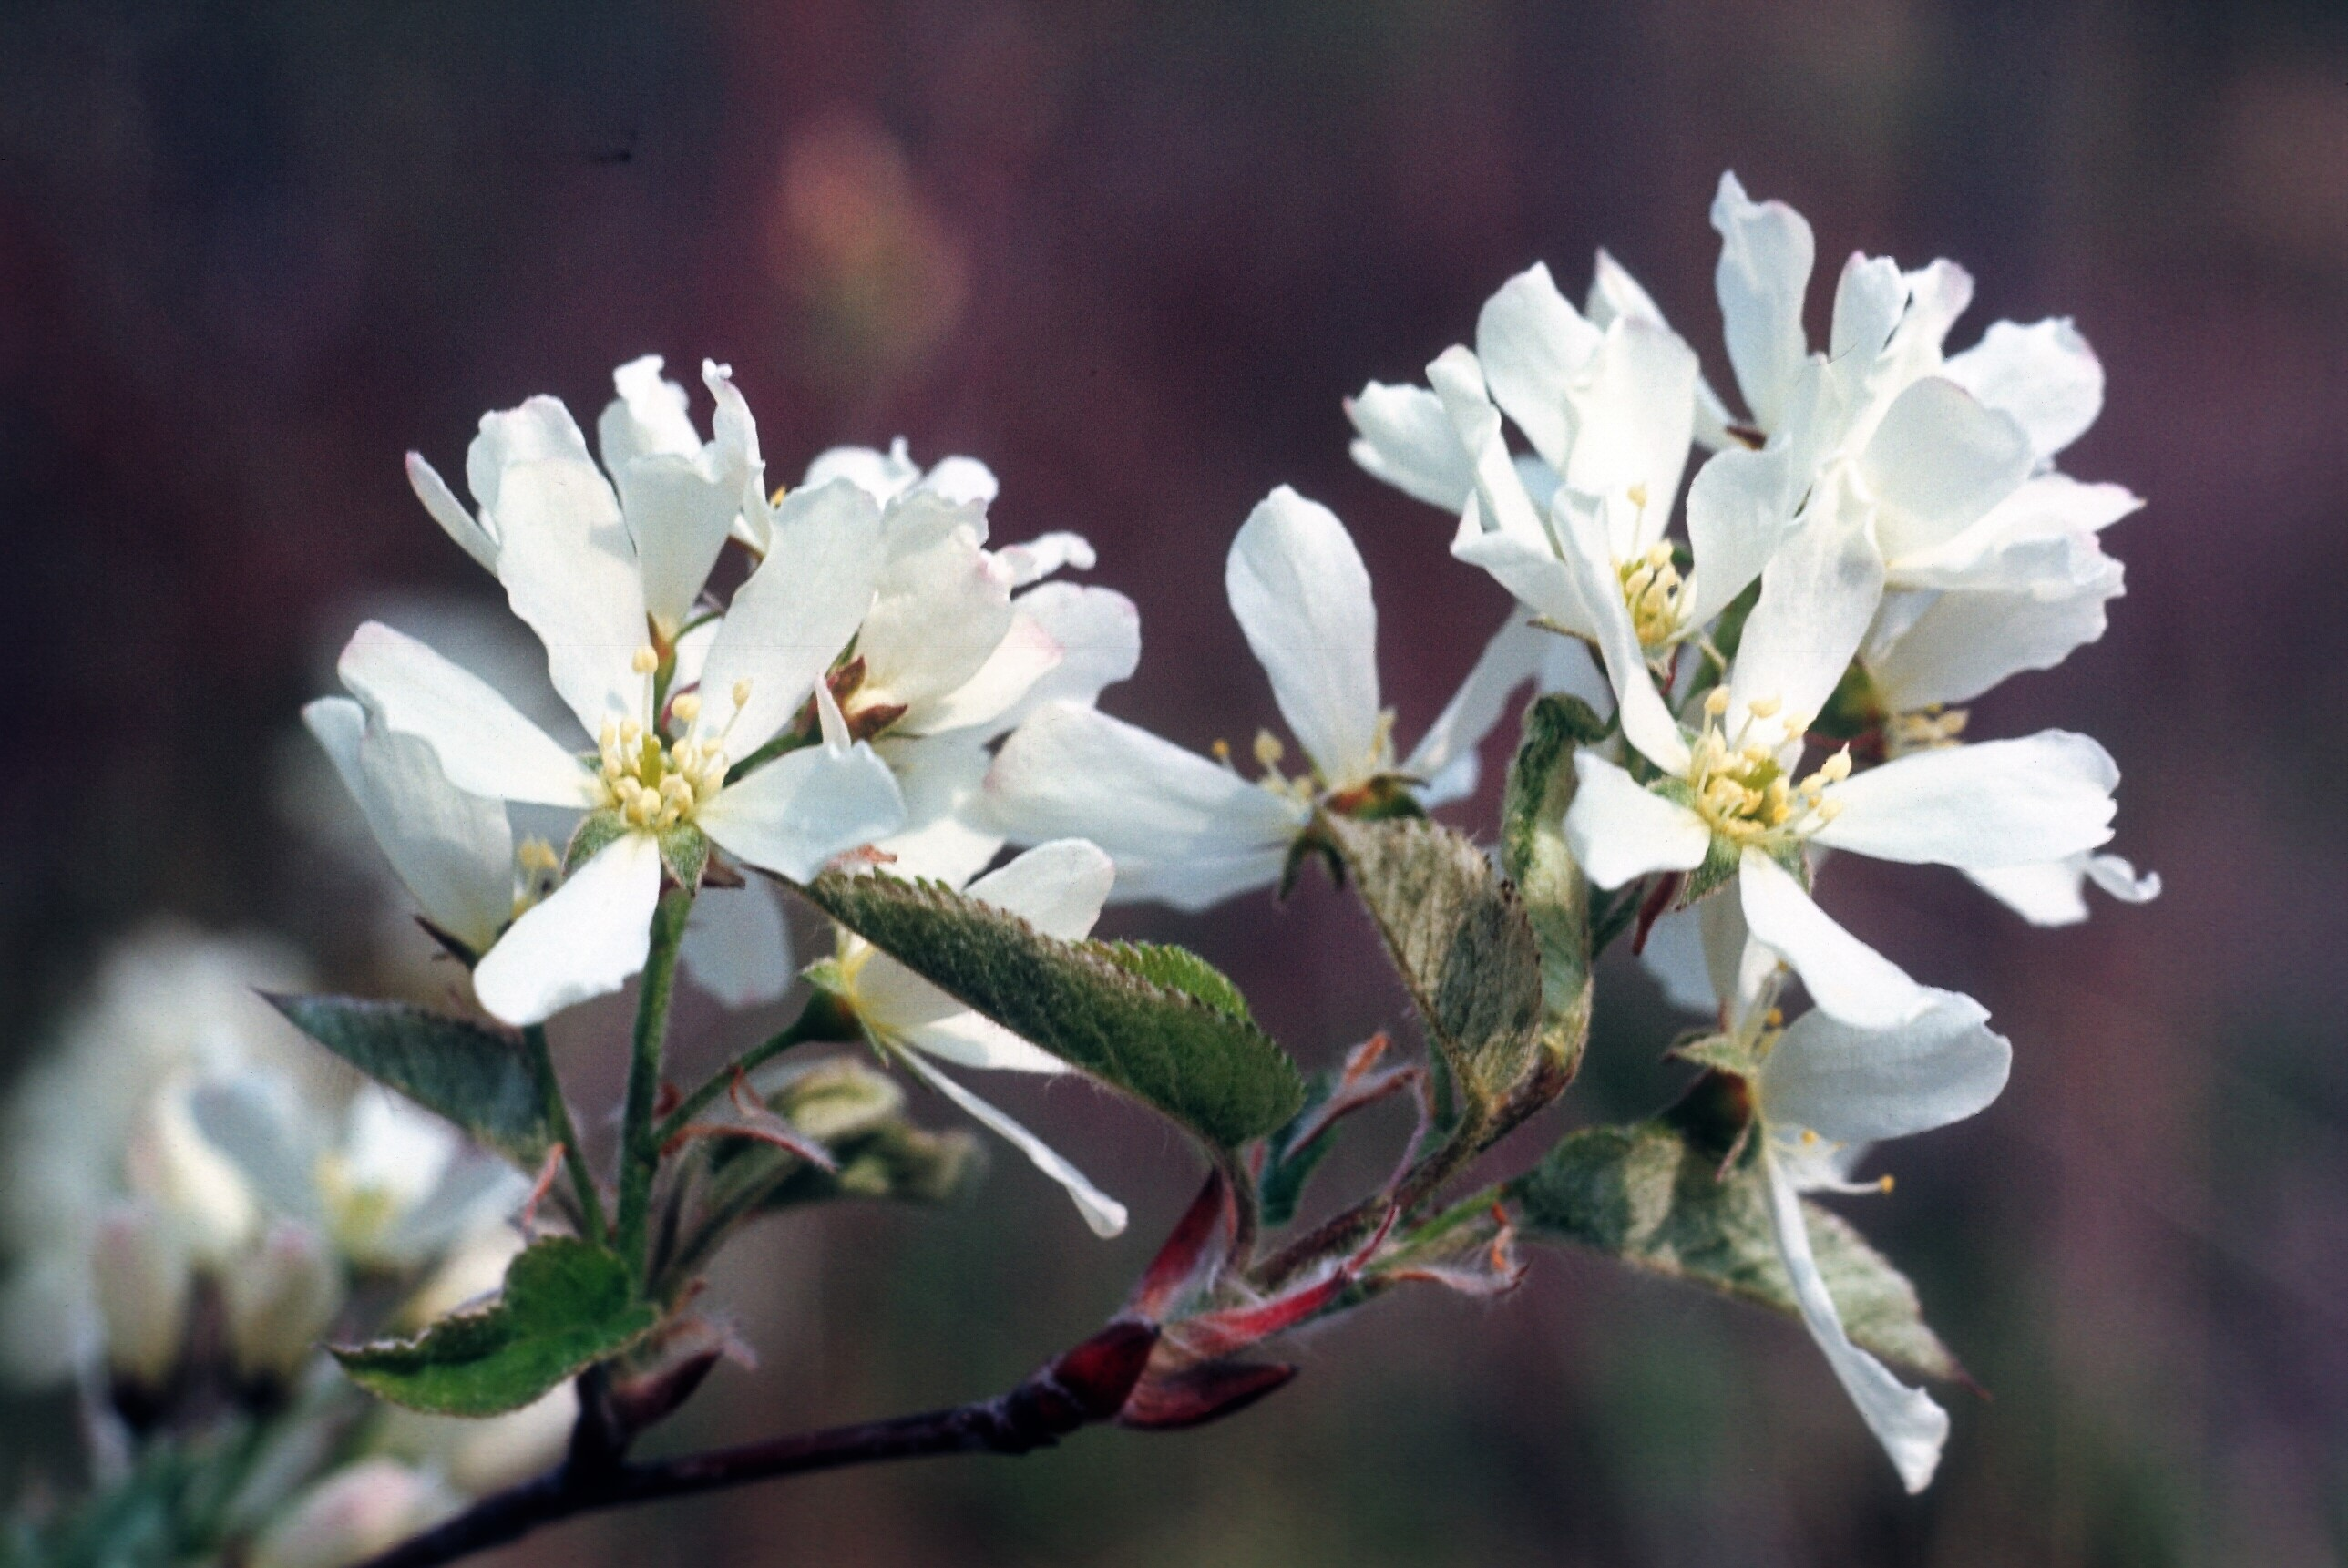 The Scientific Name is Amelanchier canadensis. You will likely hear them called Eastern Serviceberry, Sarvisberry, Shad. This picture shows the Close-up of flowers blooming in early spring before the leaves have developed. of Amelanchier canadensis